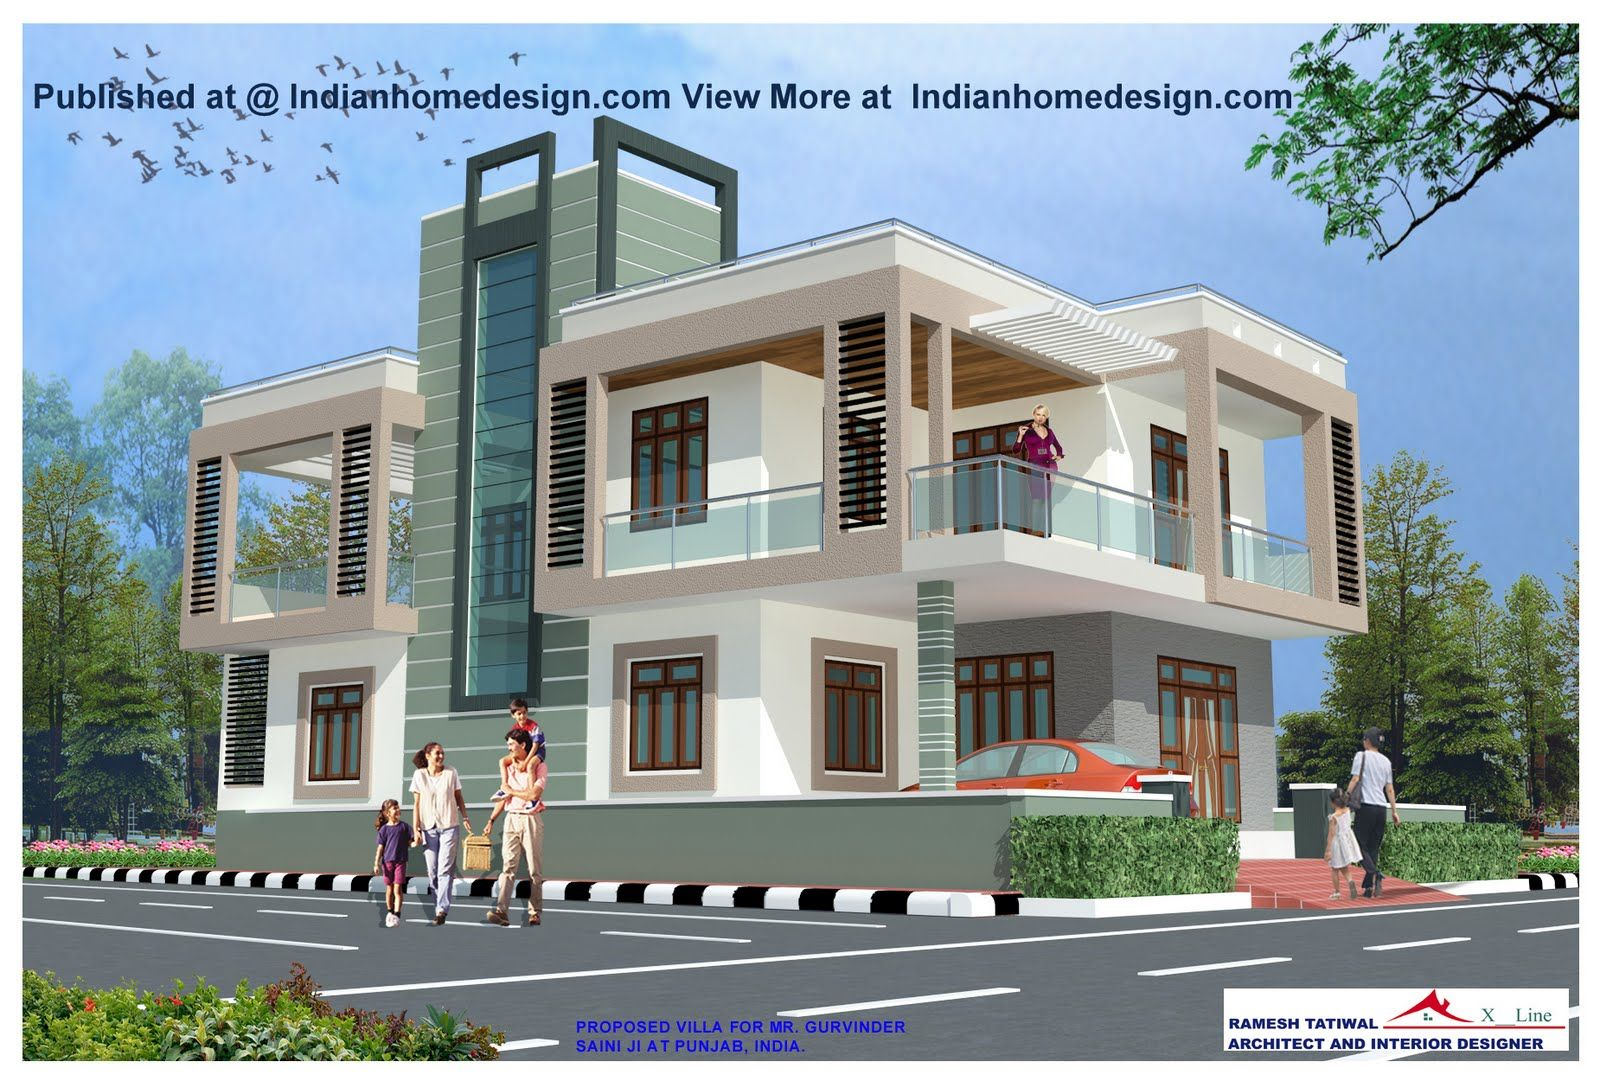 Modern exteriors villas design rajasthan style home for Interior and exterior home design software free download